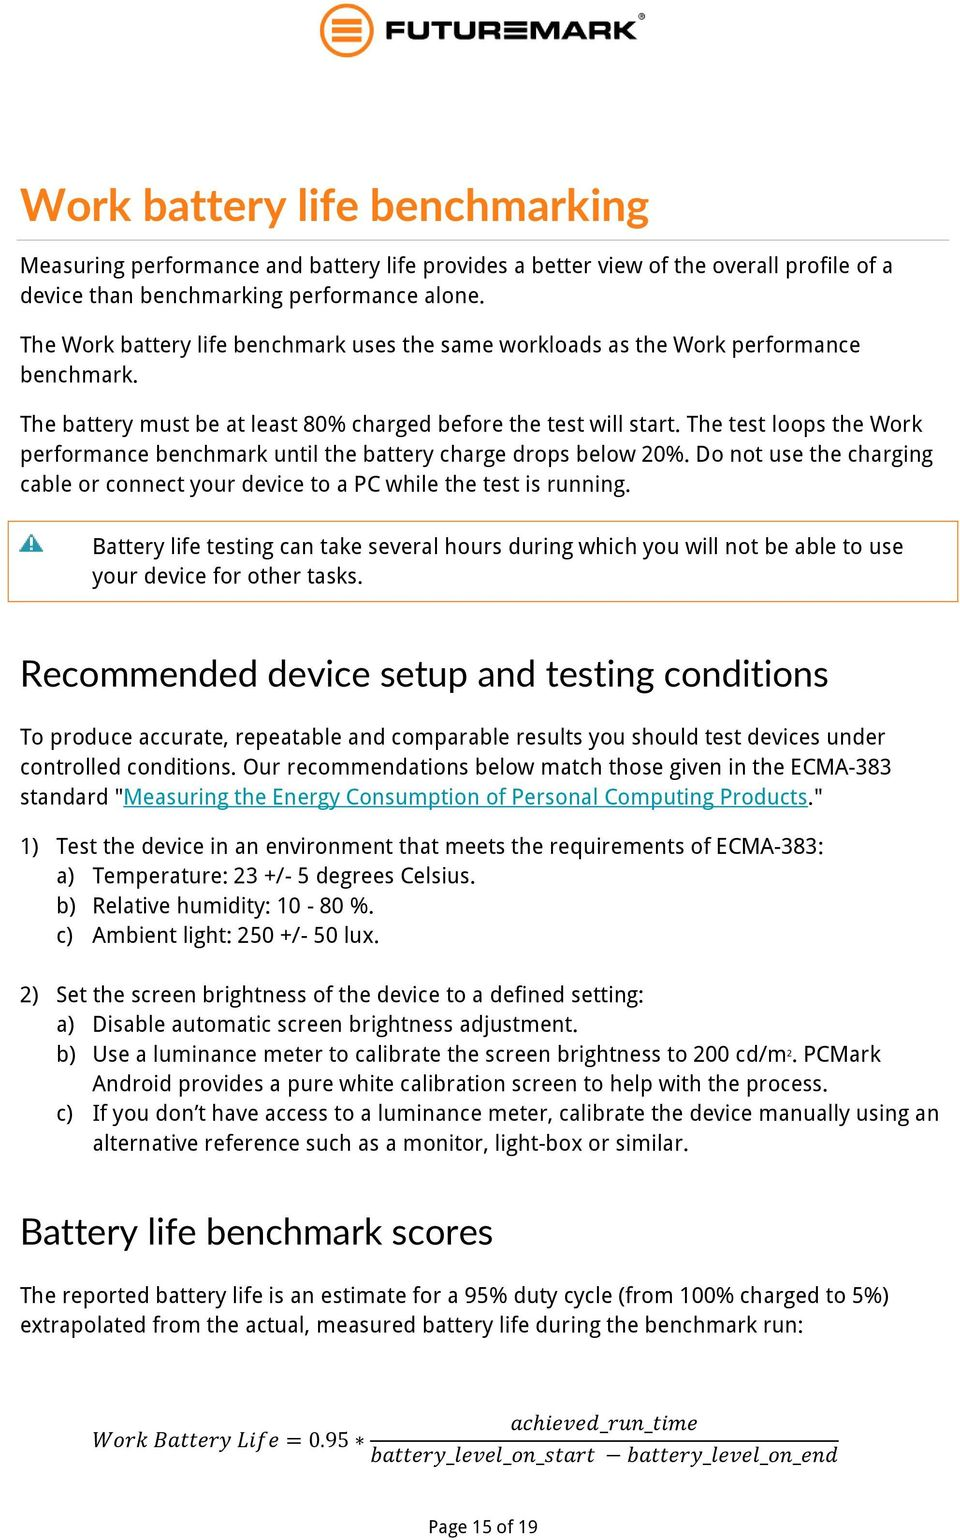 The test loops the Work performance benchmark until the battery charge drops below 20%. Do not use the charging cable or connect your device to a PC while the test is running.